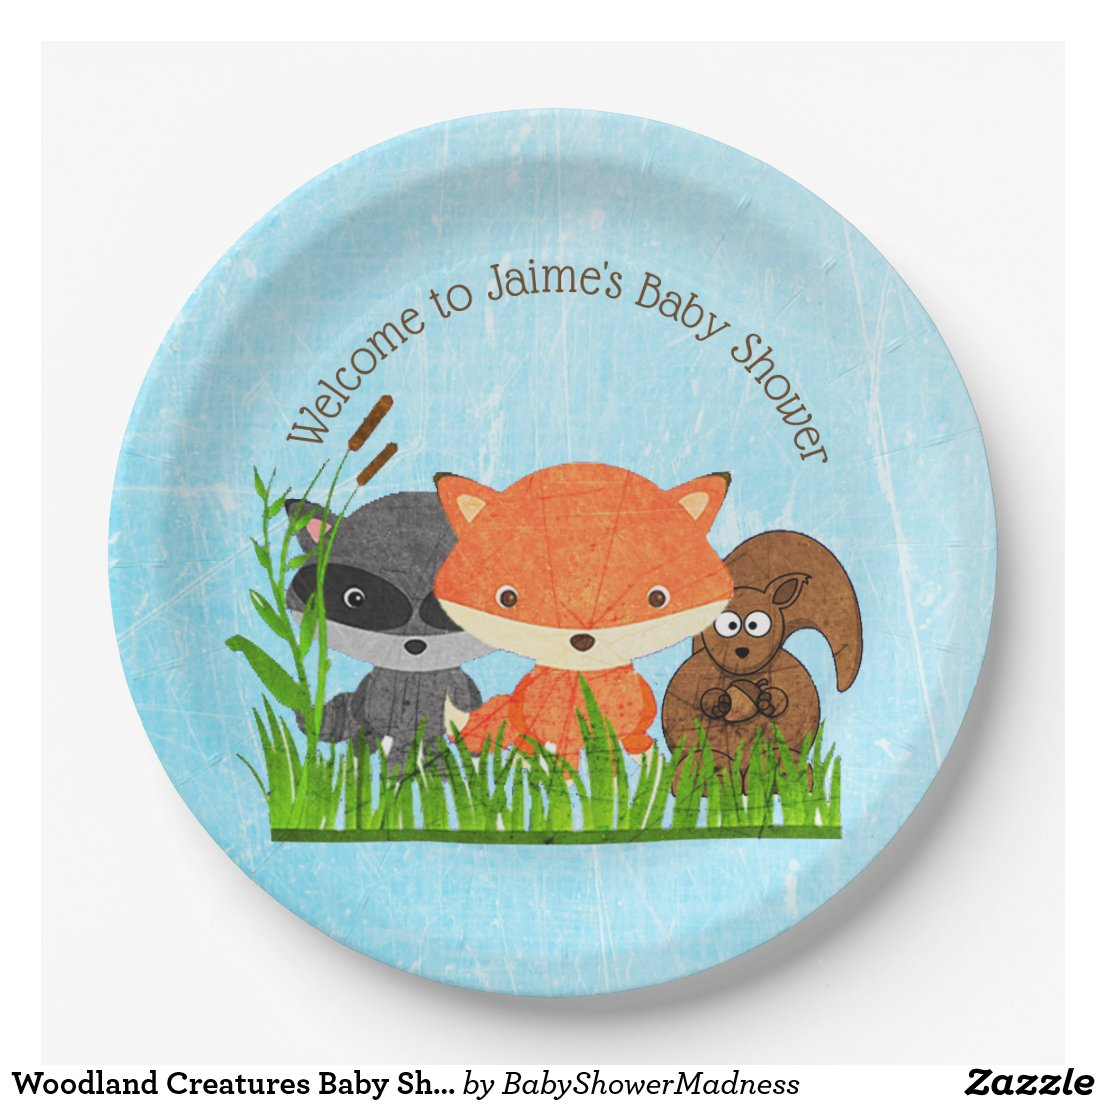 Woodland Girl Baby Shower Paper Plate Woodland Creatures Baby Shower Paper Plates ...  sc 1 st  Time for the Holidays & Woodland Creatures Themed Baby Shower | Time for the Holidays